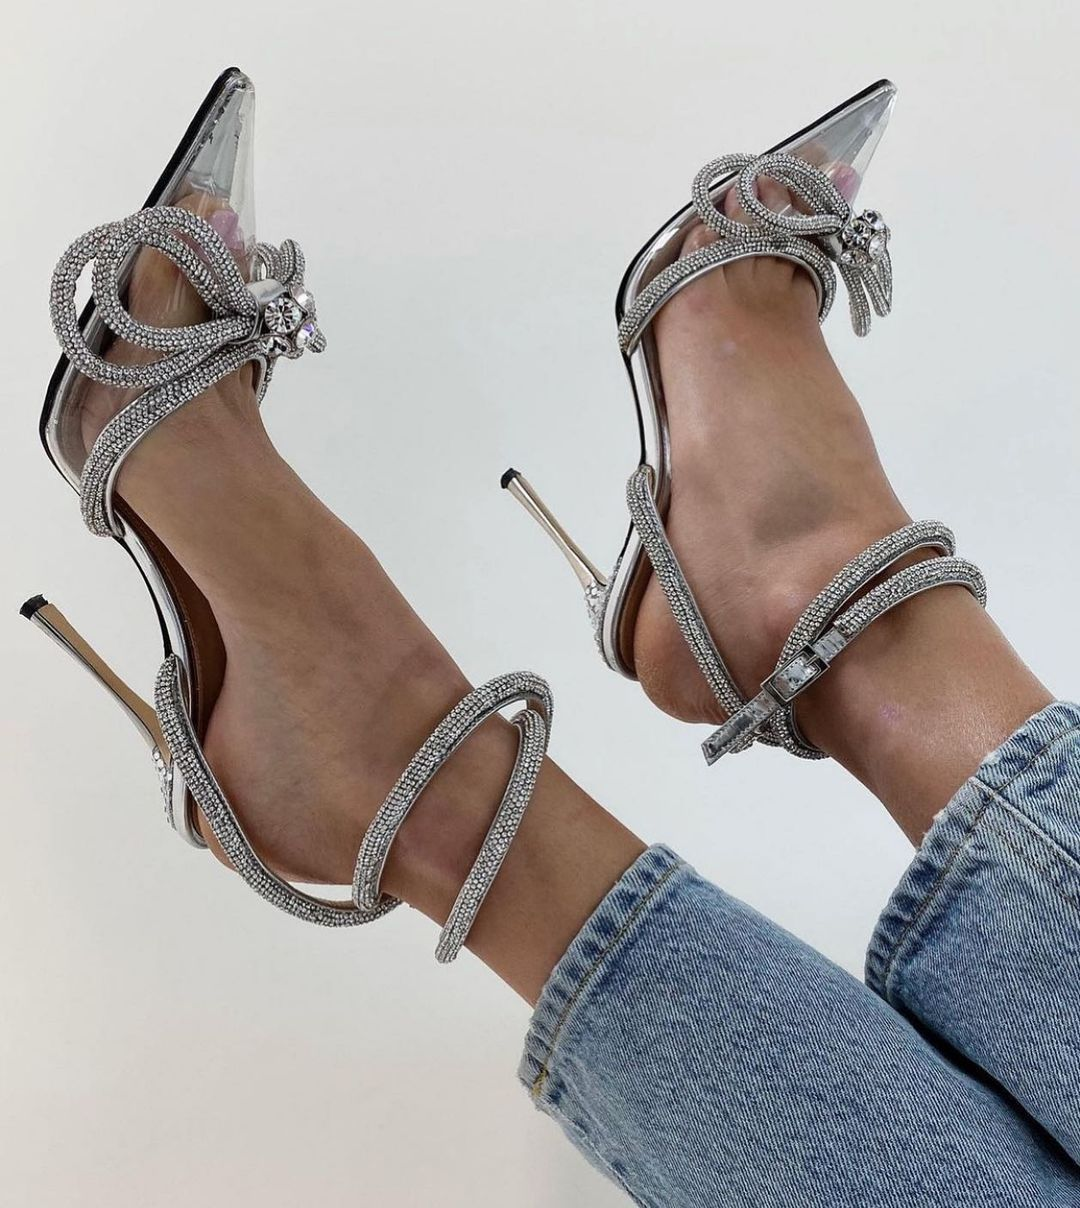 Details about  /Womens Fashion Leather Pointed Toe Diamante High Heel Ankle Boots Party Shoes MN